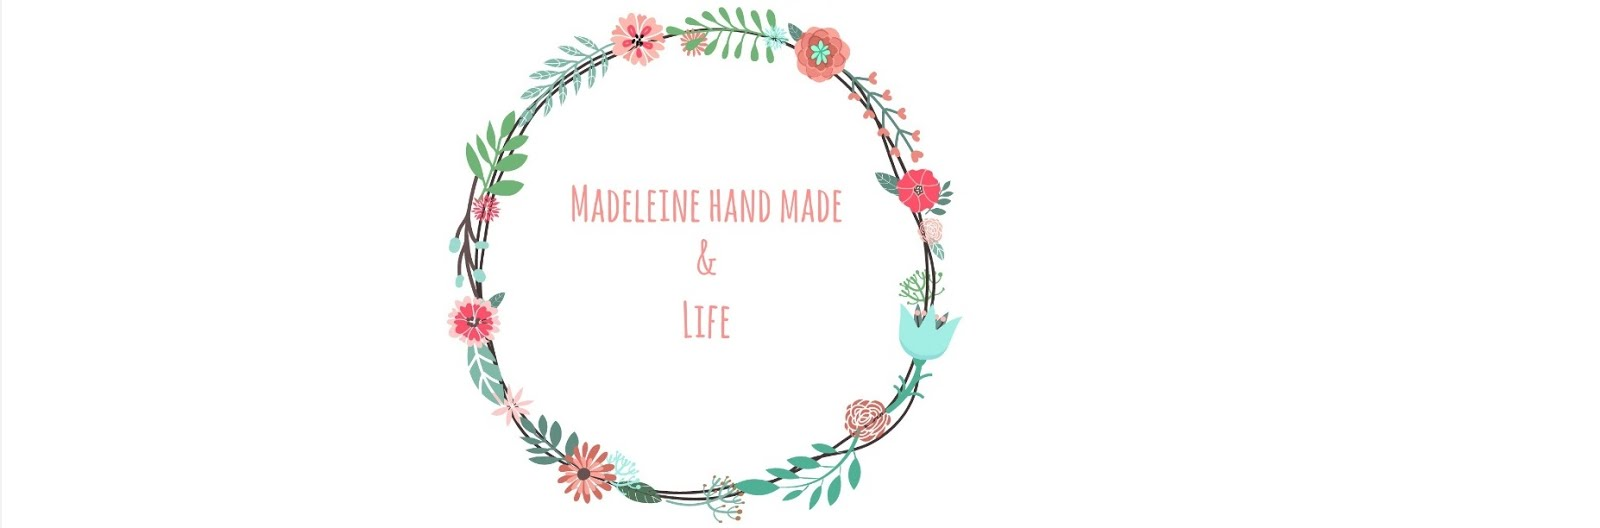 madeleine hand made